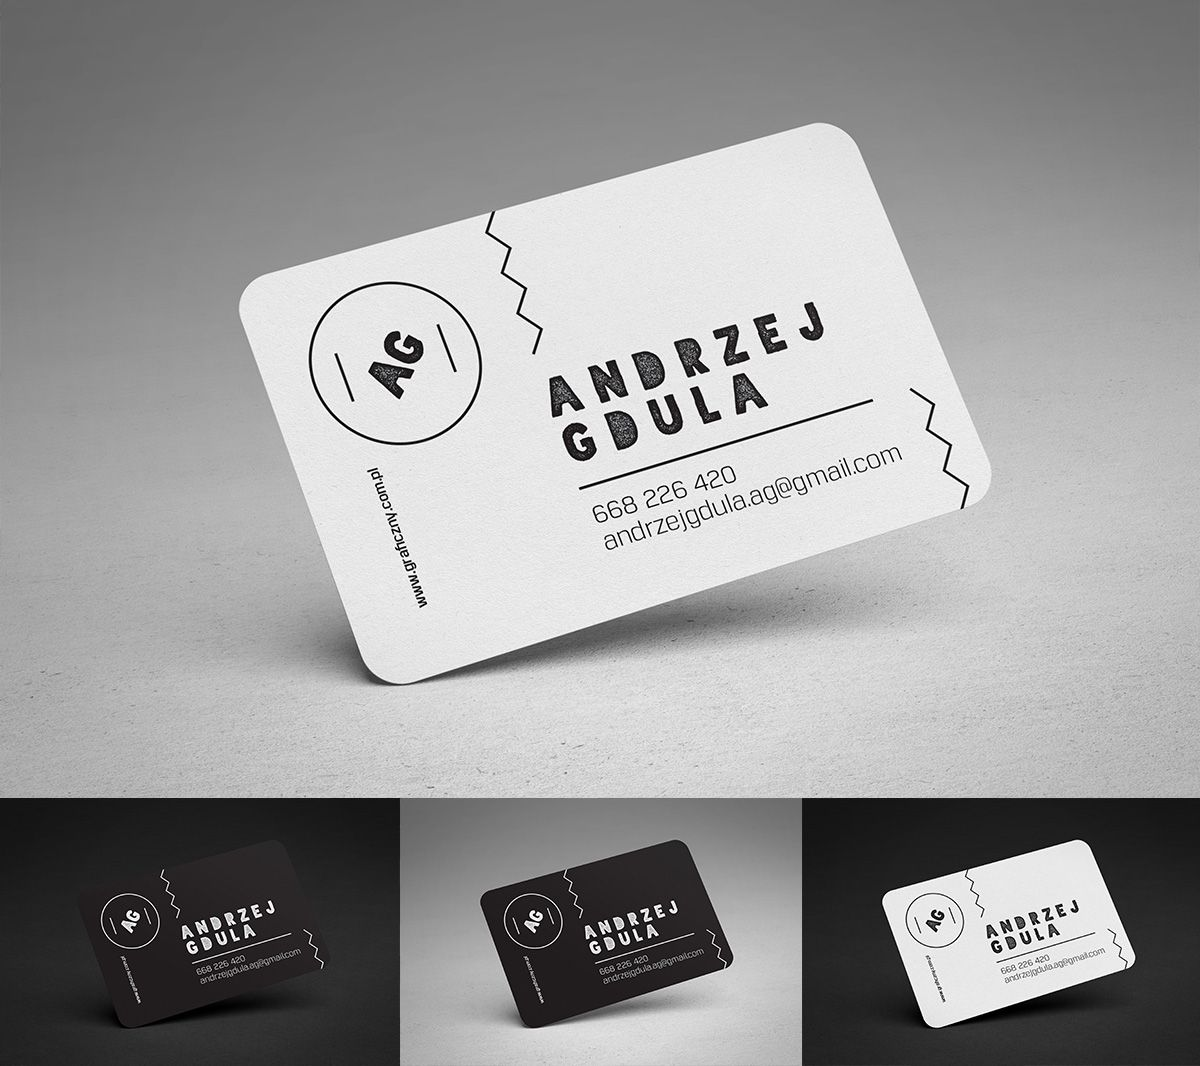 Rounded business cards mockup | Pinterest | Mockup, Business cards ...